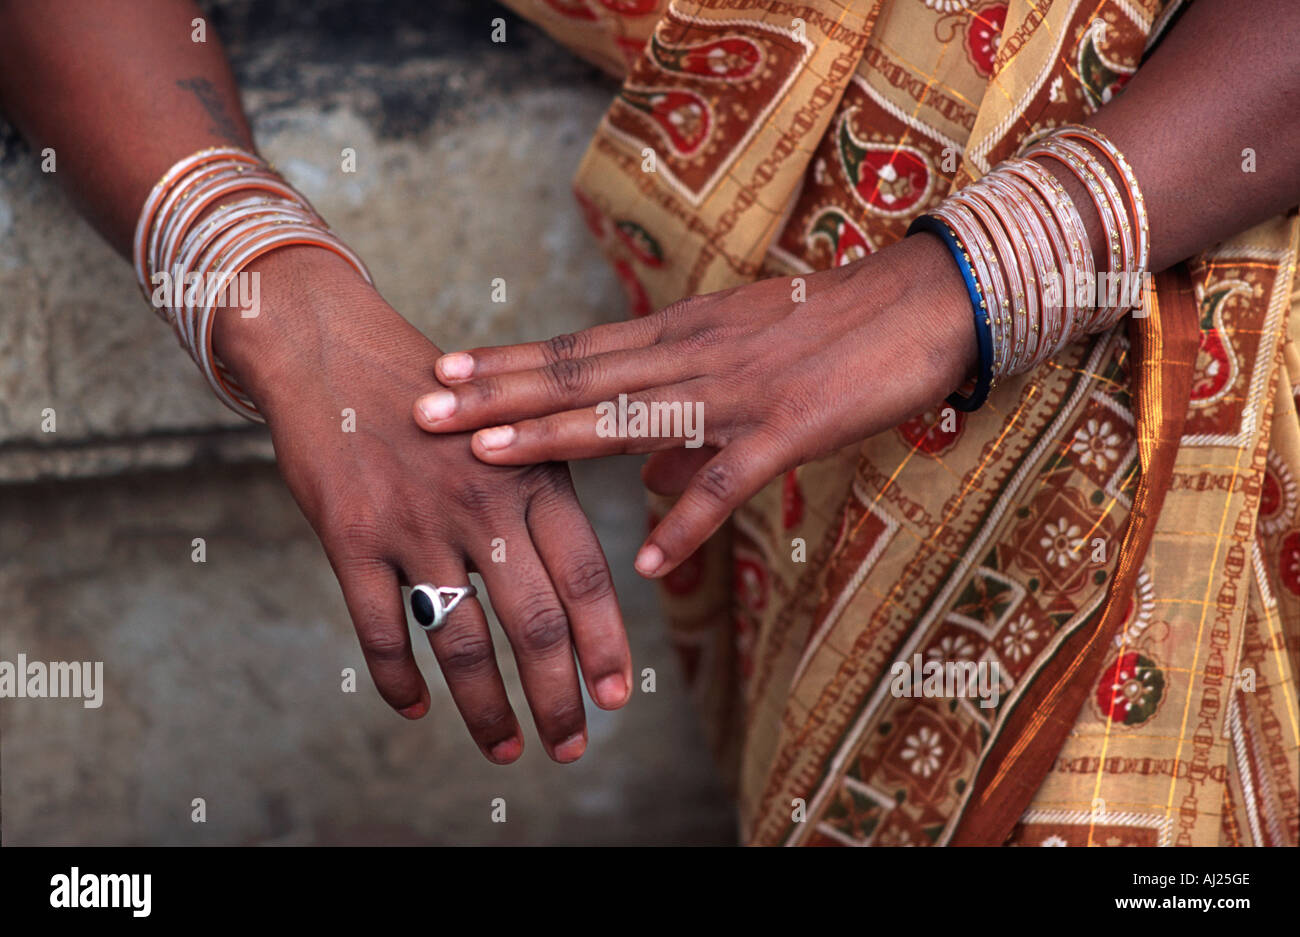 Detail of a Hindu woman s arms and hands with jewellery and colourful sari Madhya Pradesh India - Stock Image